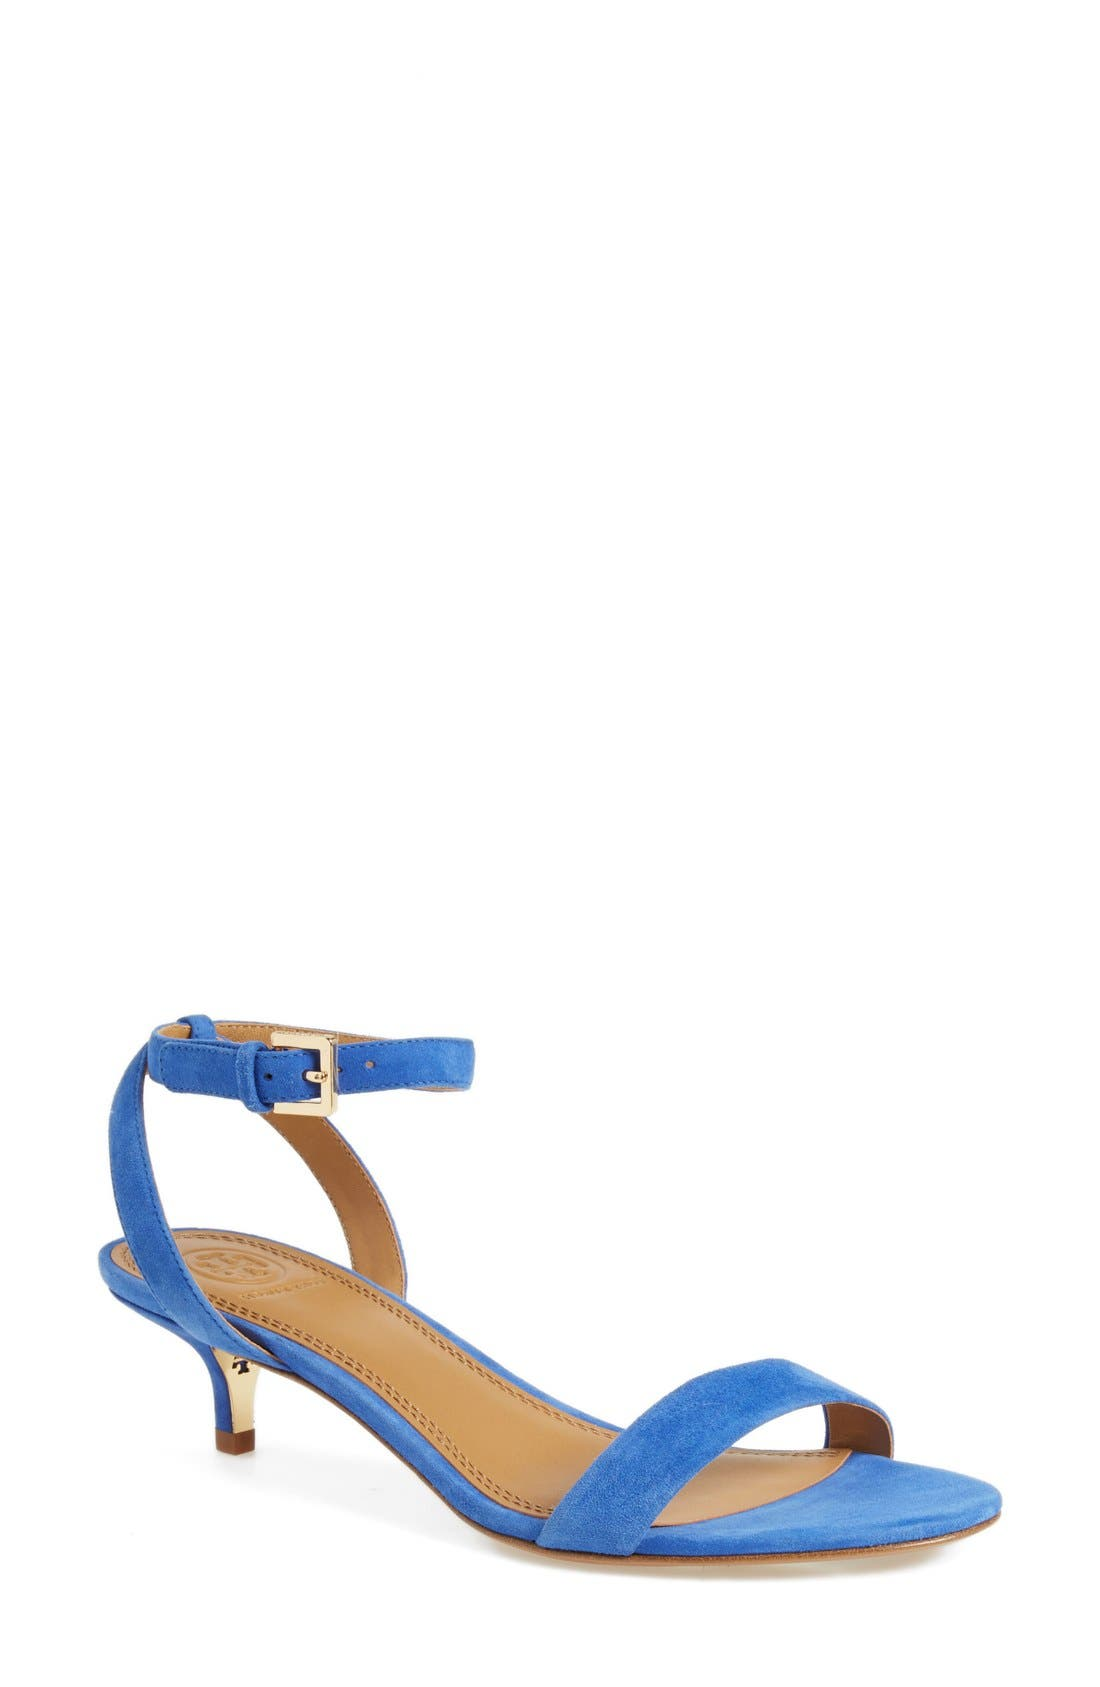 'Elana' Ankle Strap Sandal,                             Main thumbnail 1, color,                             Jelly Blue Suede